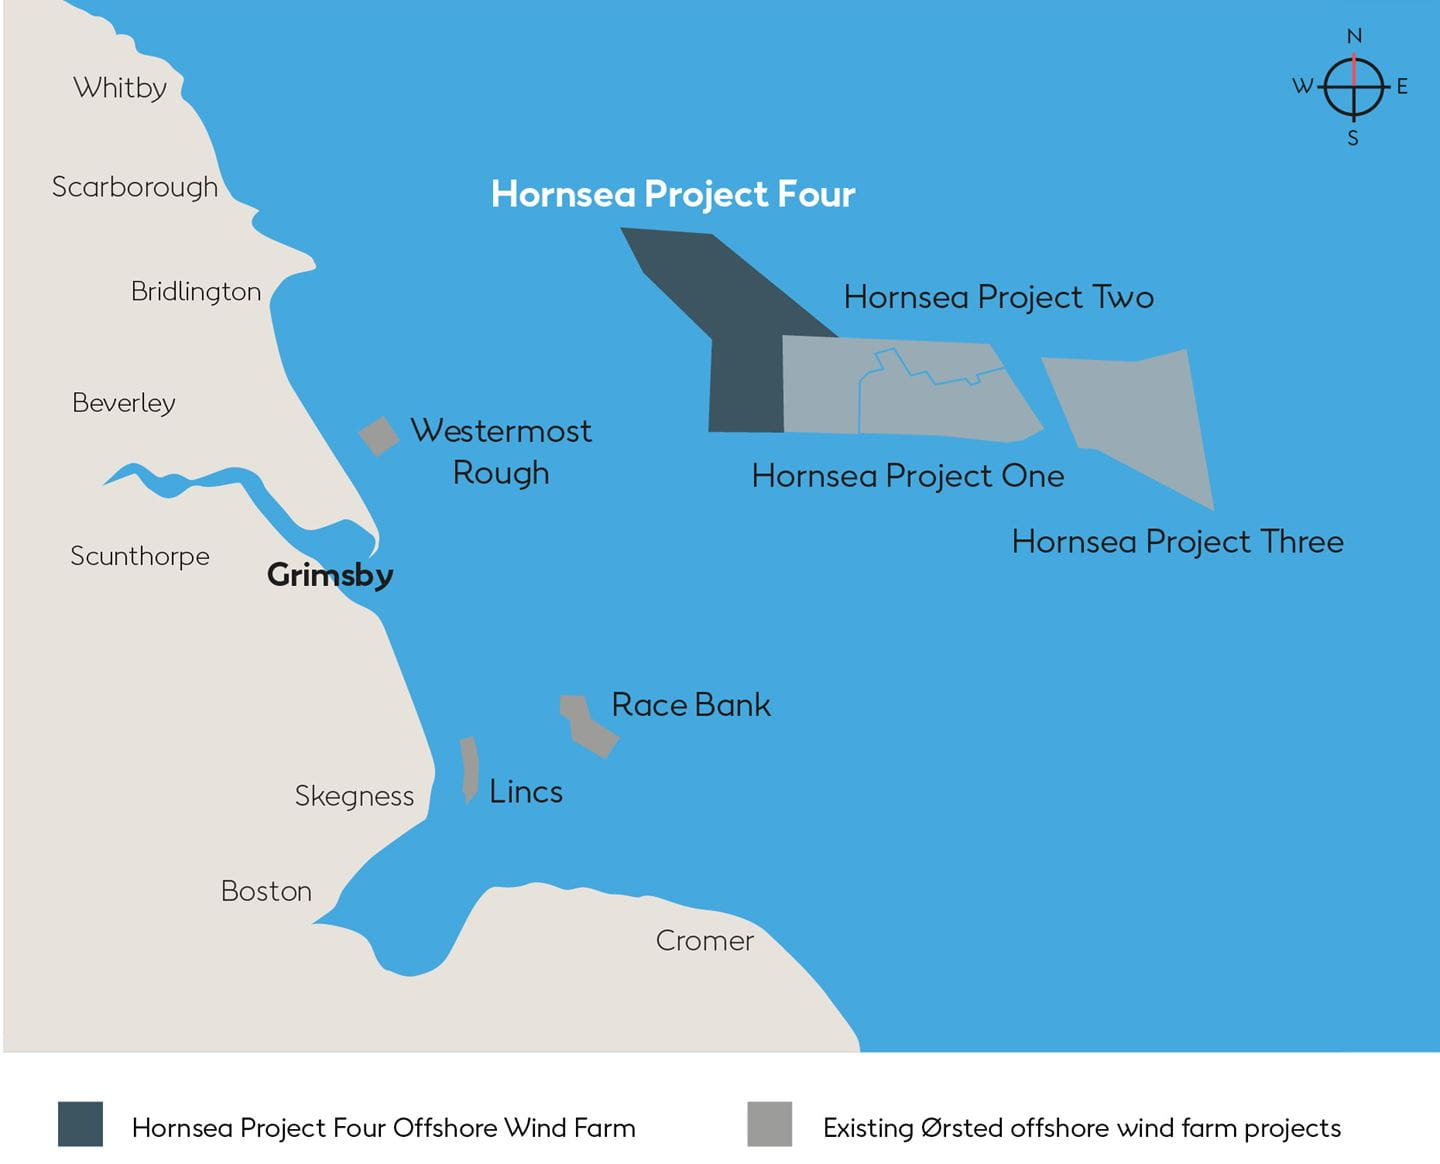 Hornsea Project Four map